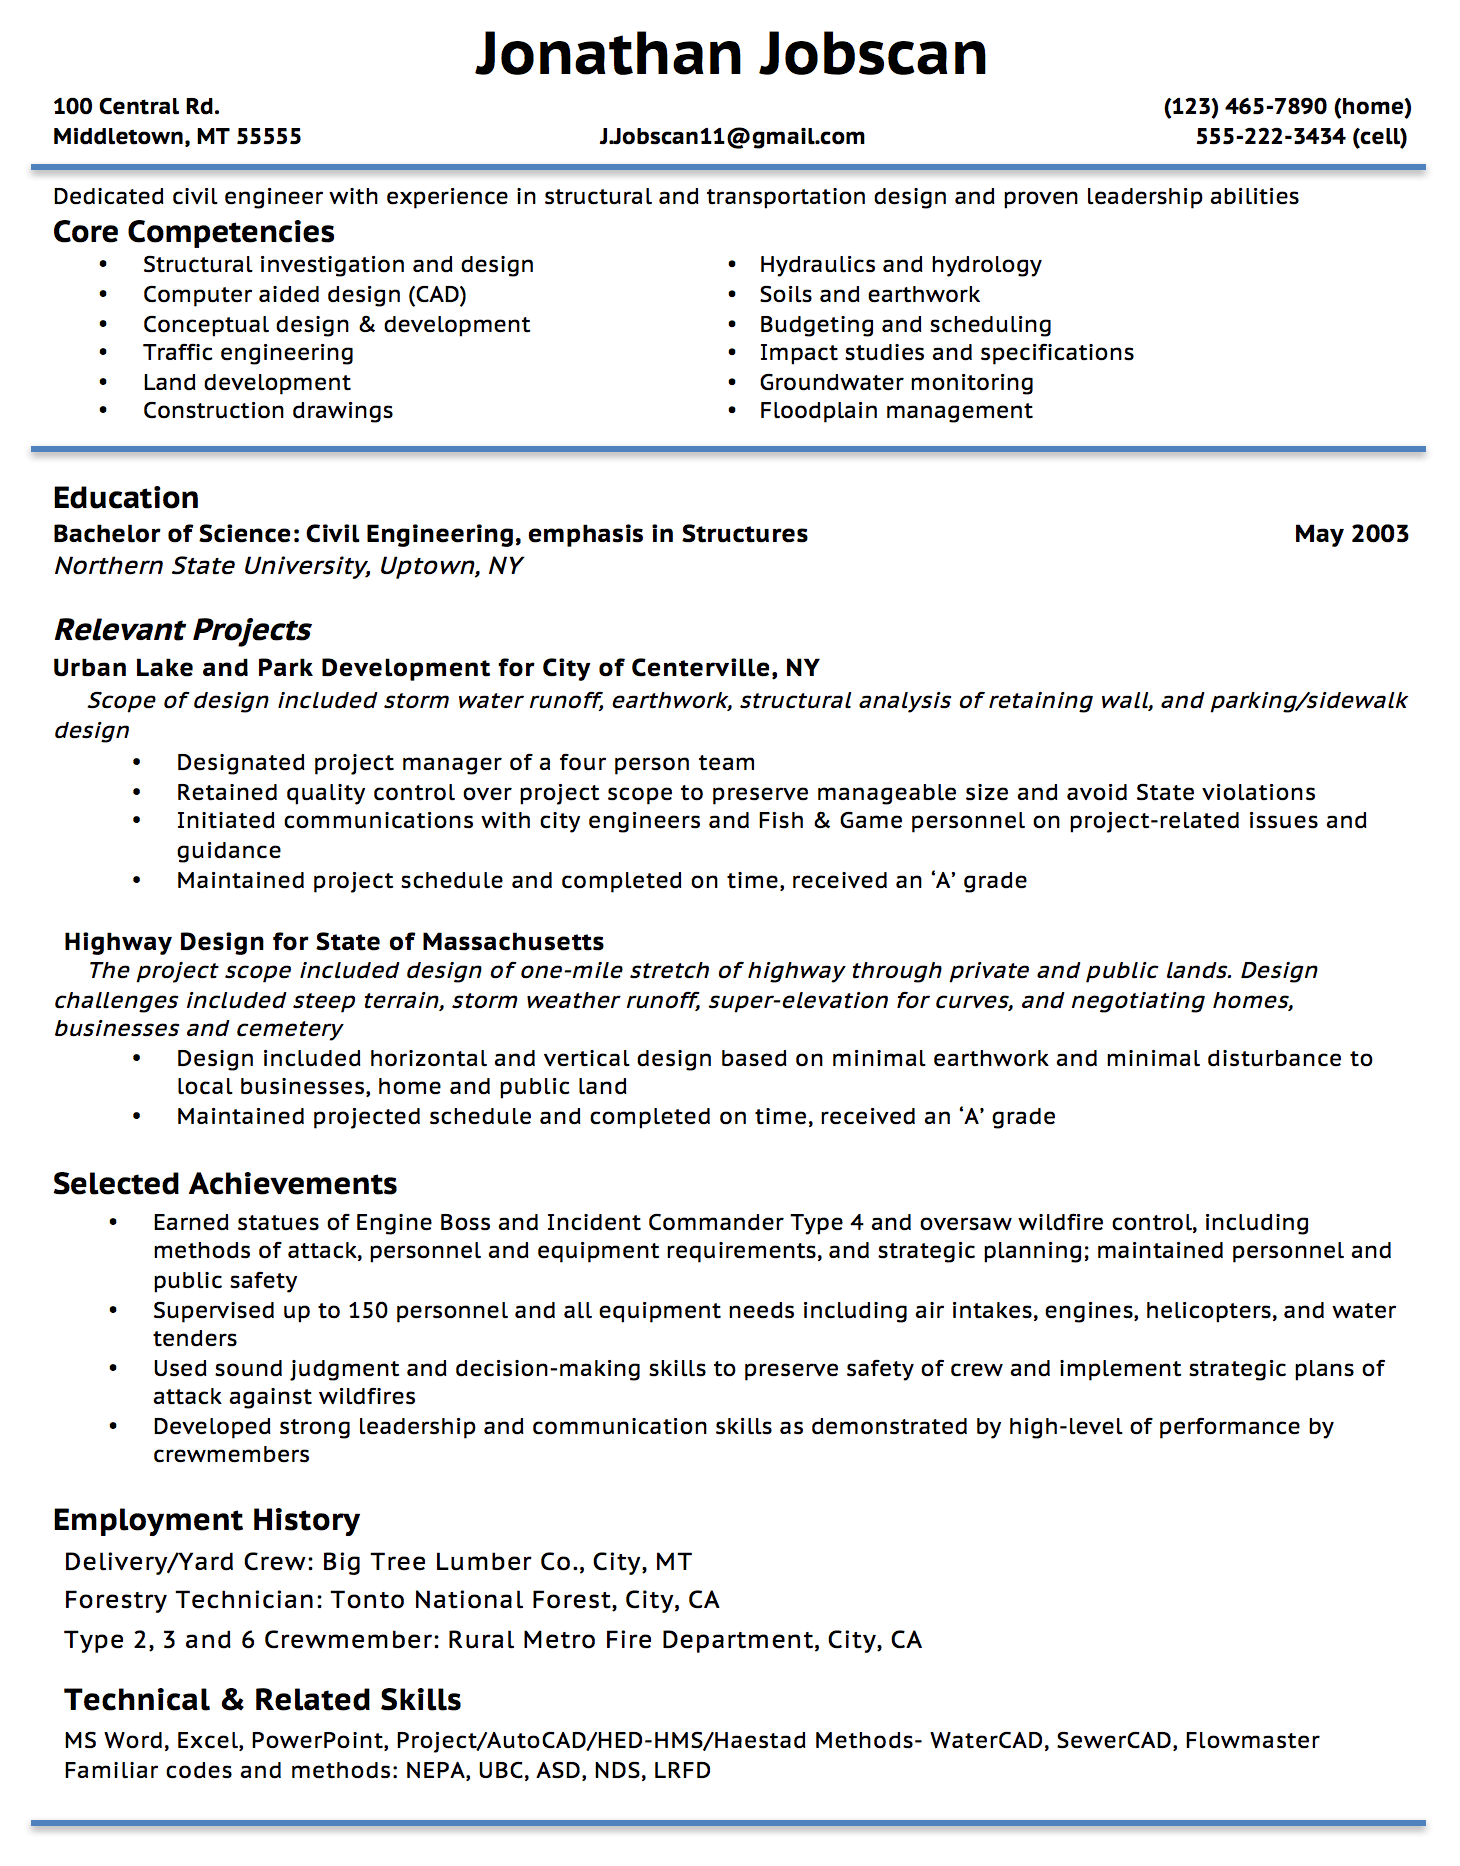 functional resume writing guide resume format examples functional resume writing guide jobstar resume guide sample resumes cover letter example of a functional resume